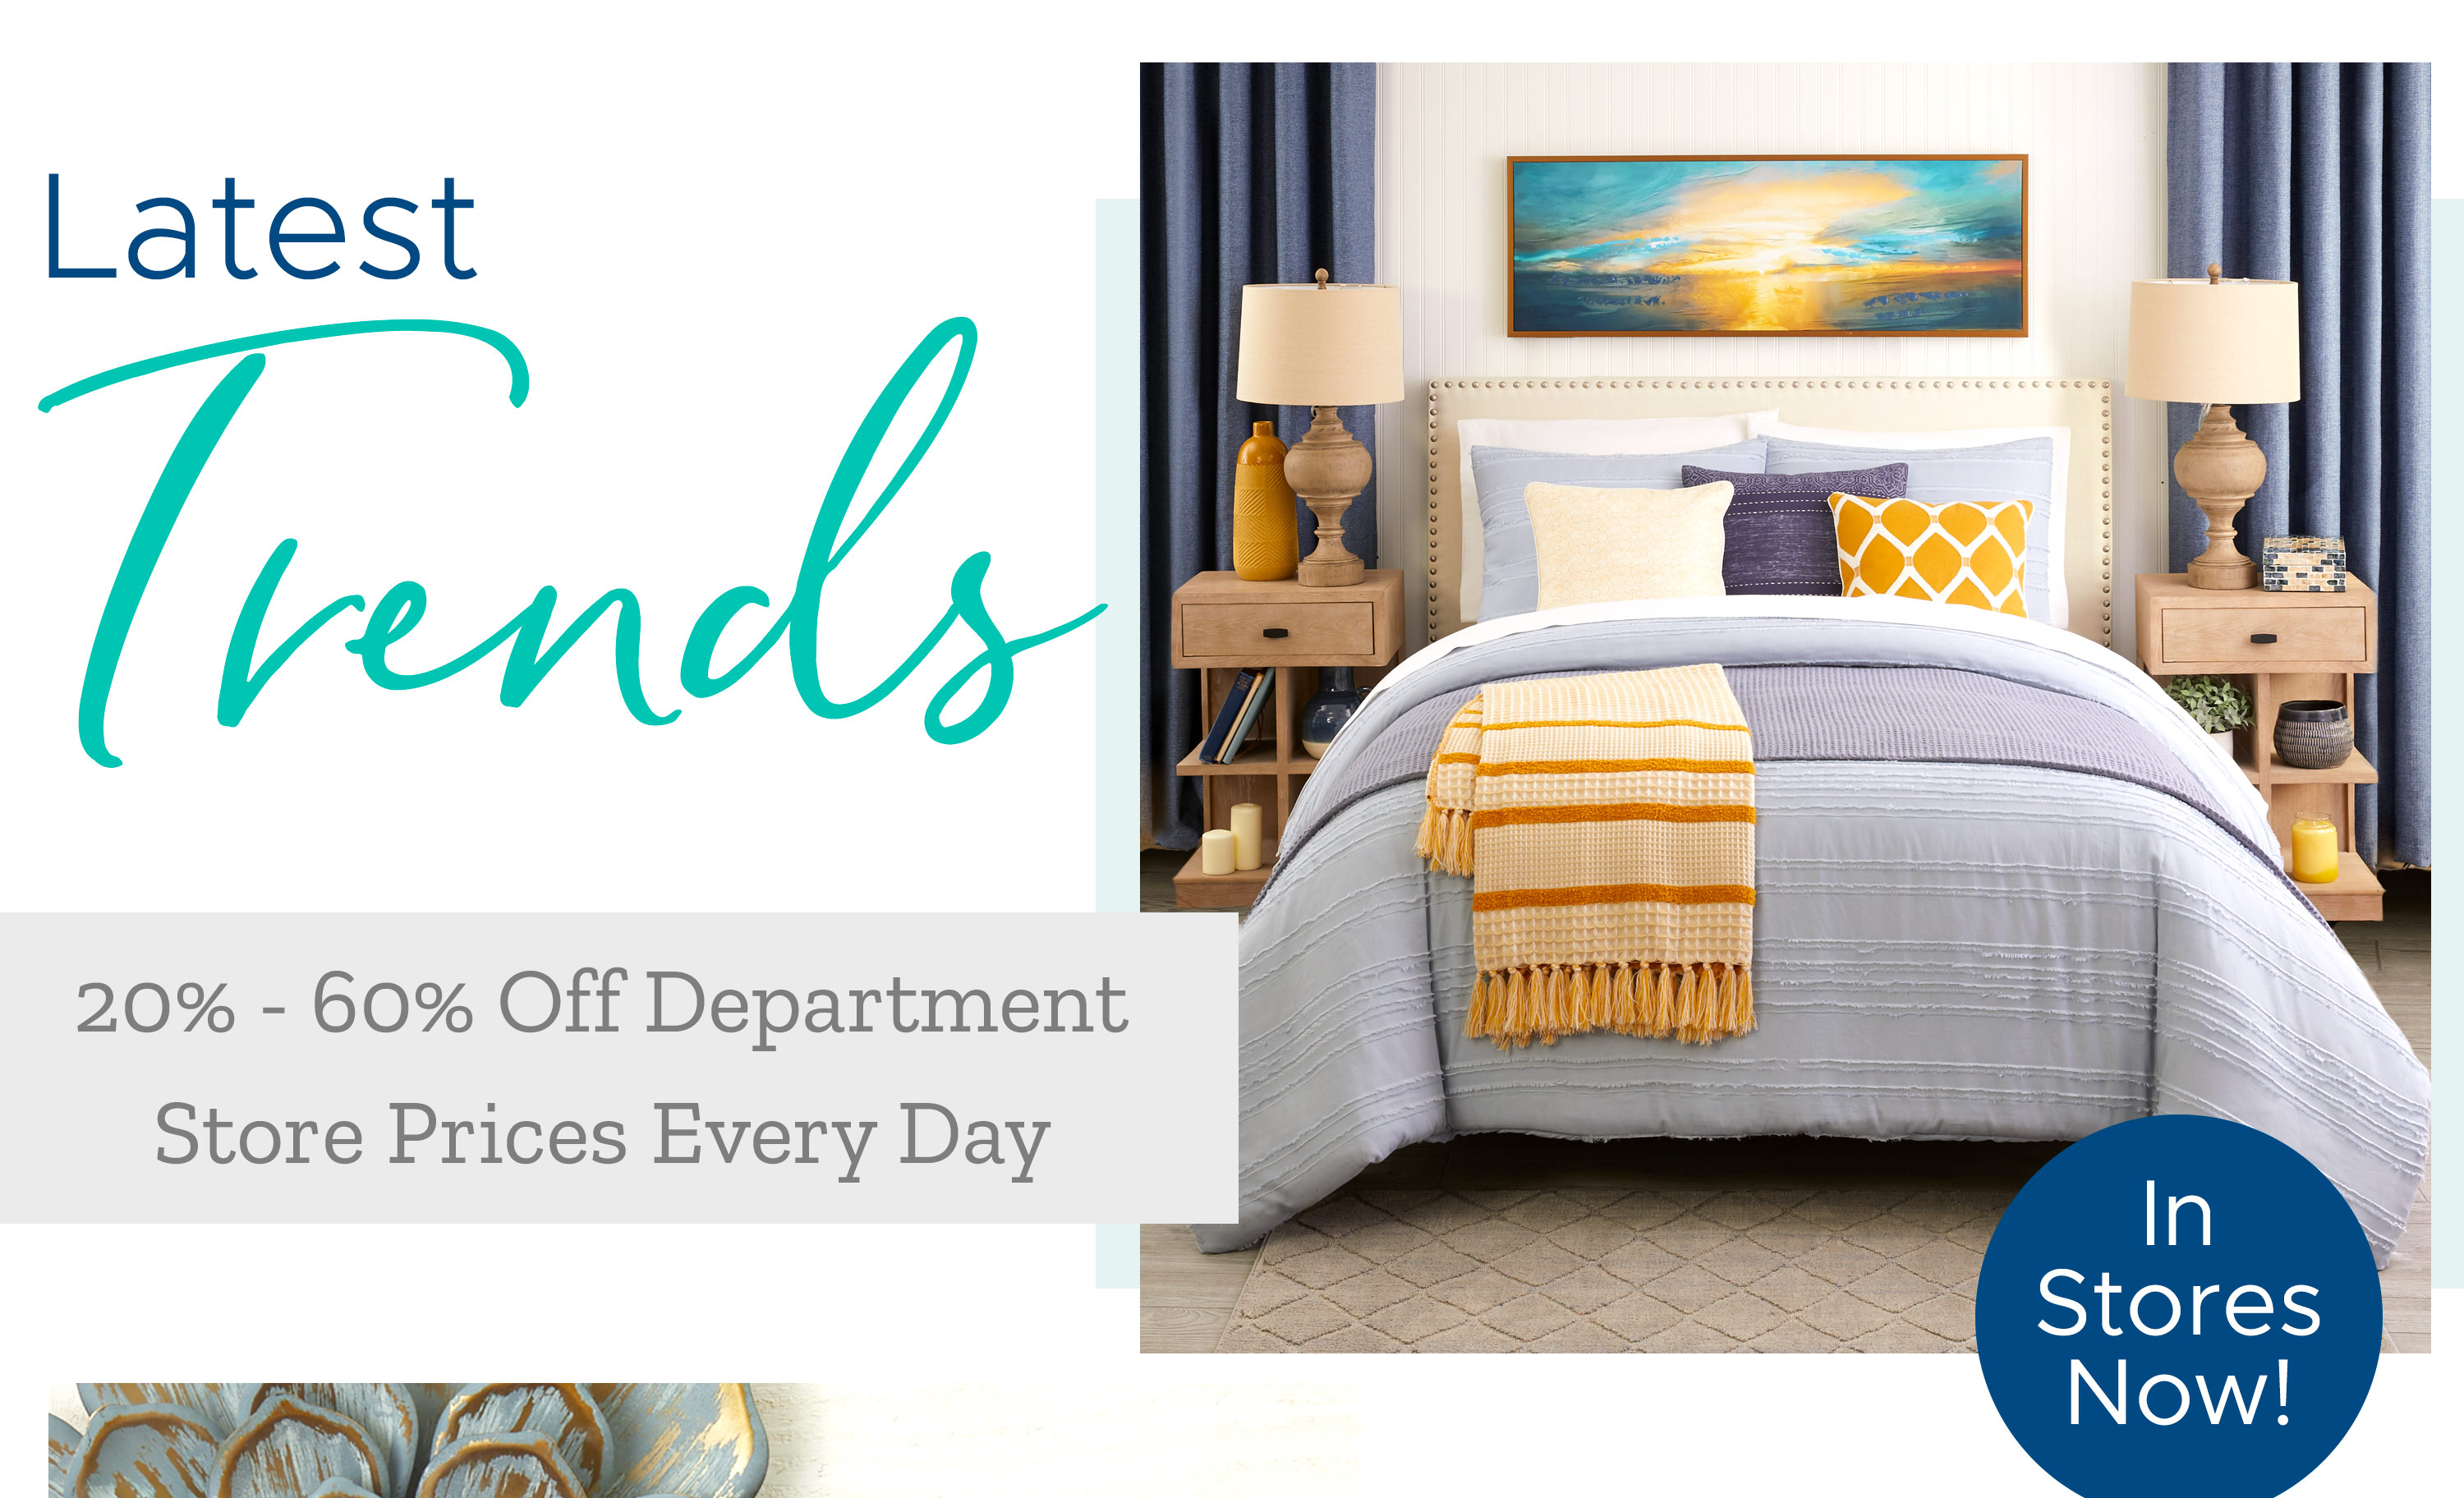 Latest Trends - 20% - 60% Off Department Store Prices Every Day